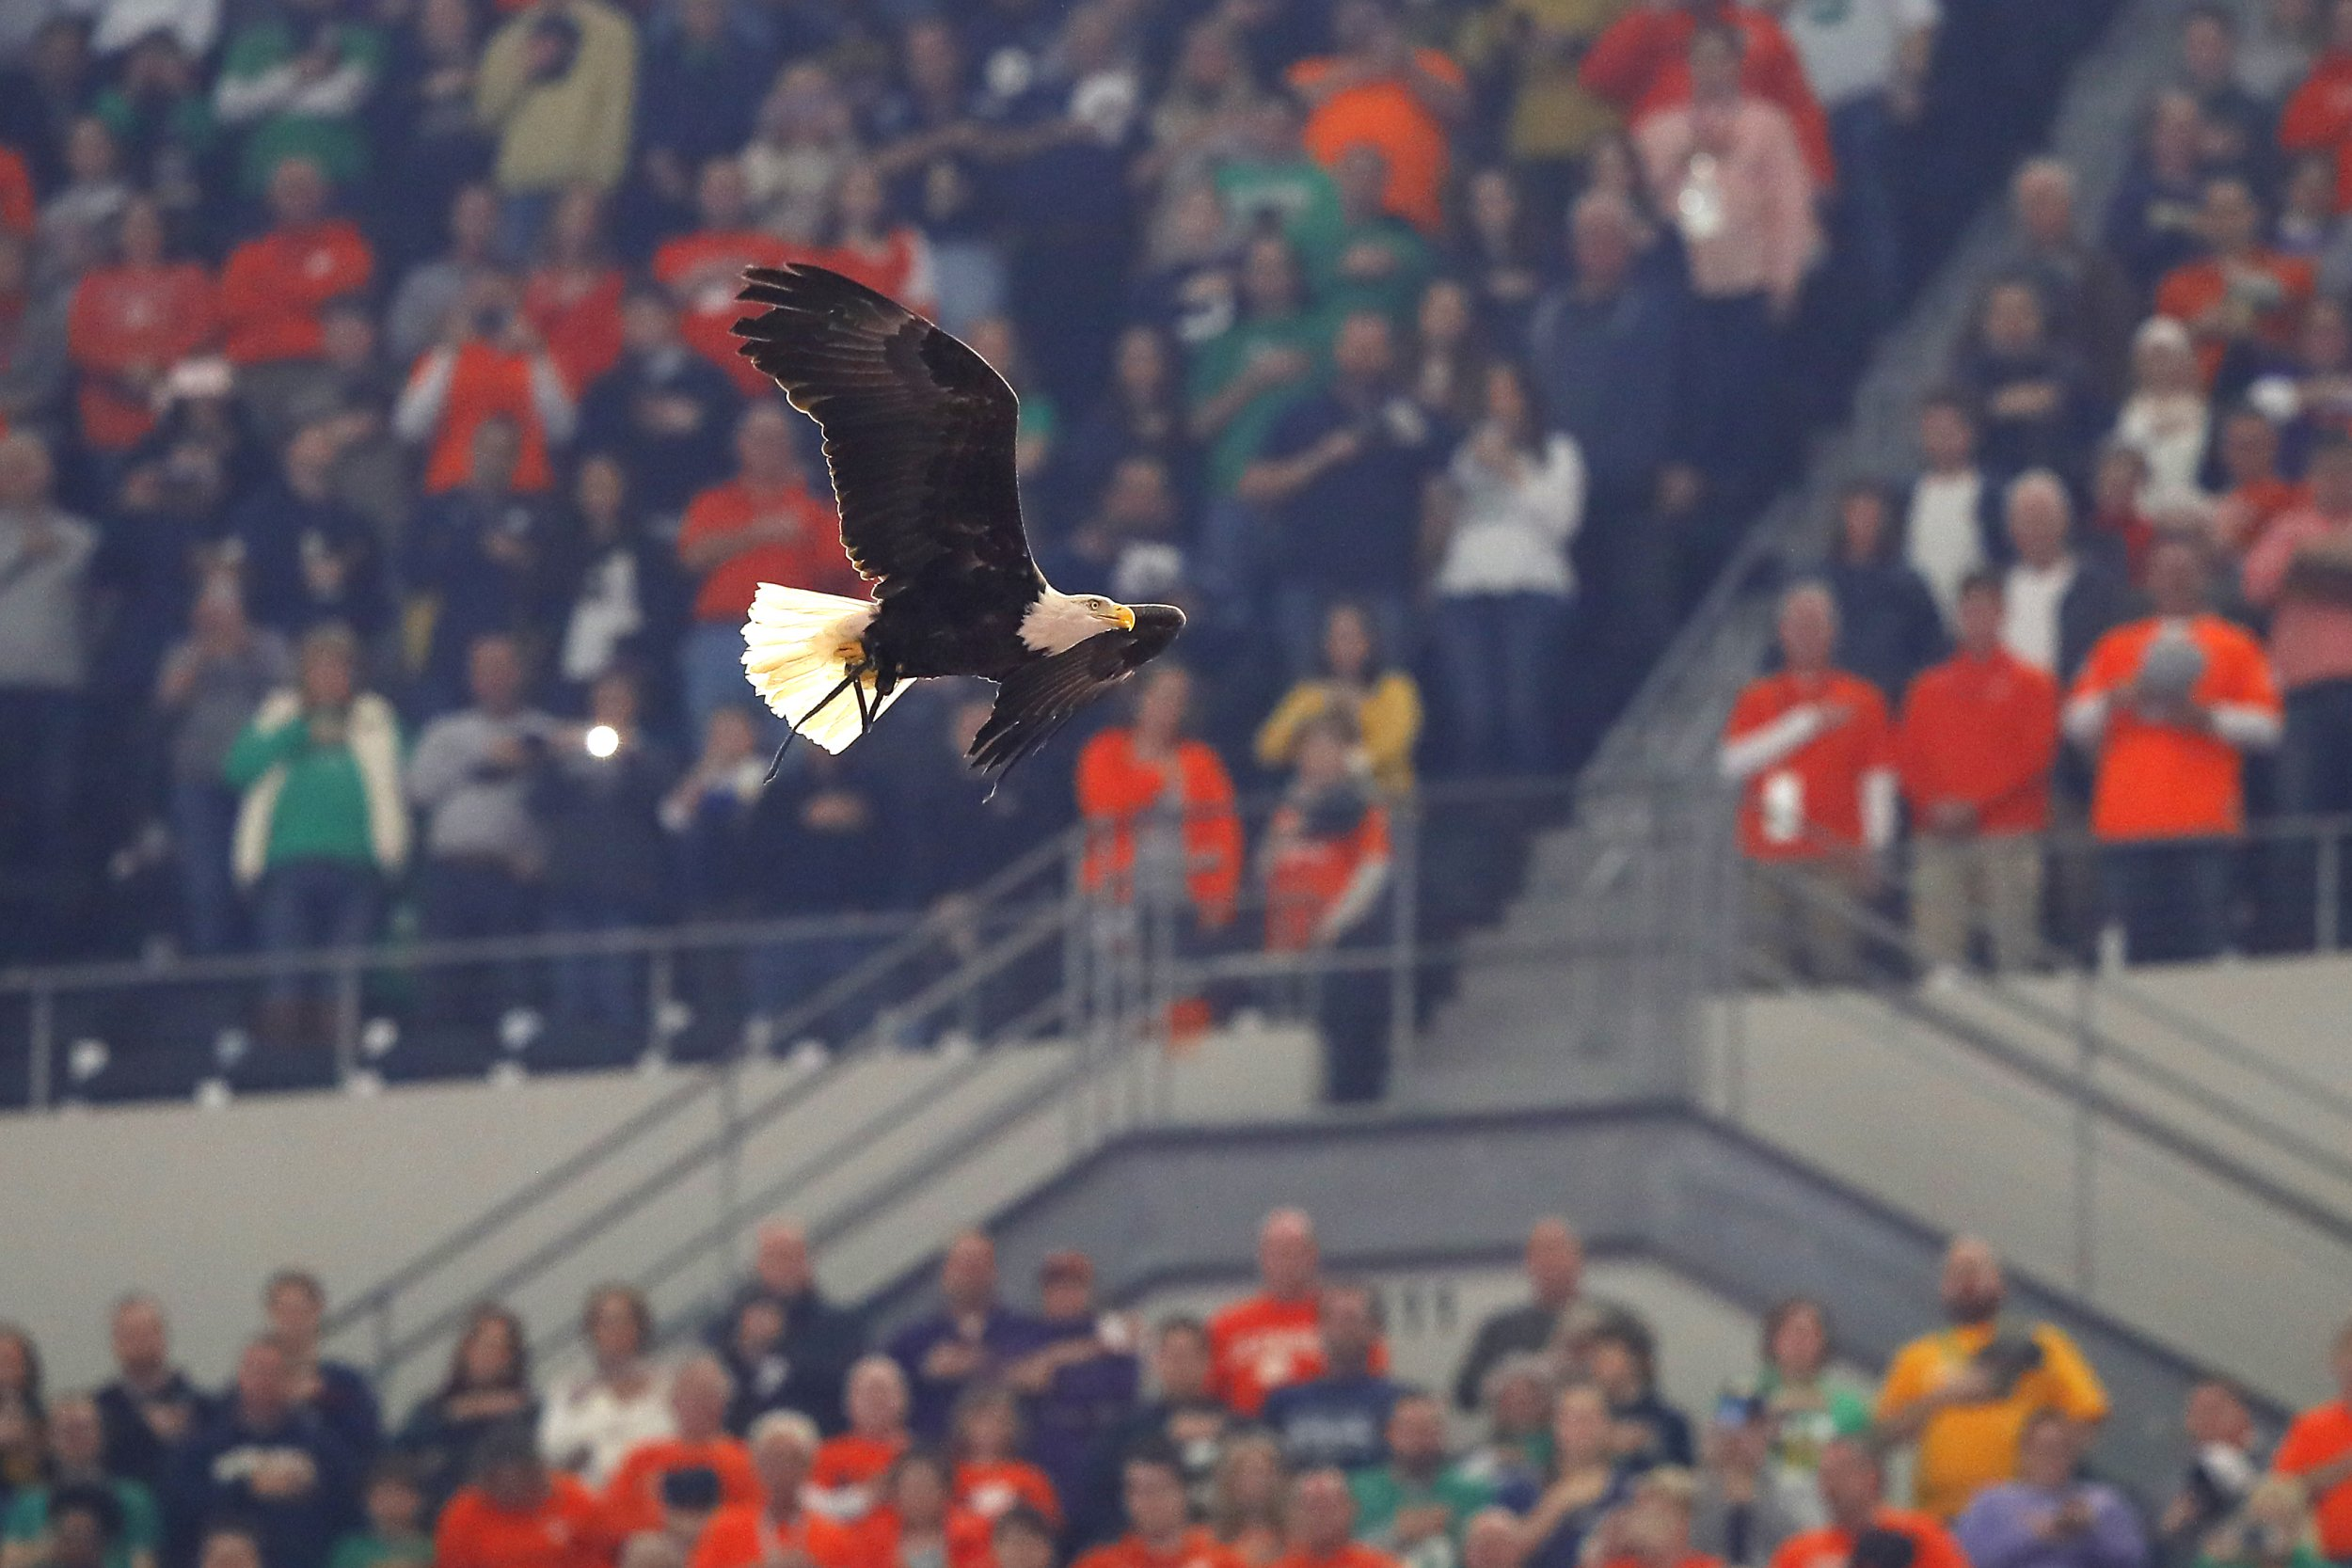 Bald Eagle Lands on Fans in Stadium During Cotton Bowl